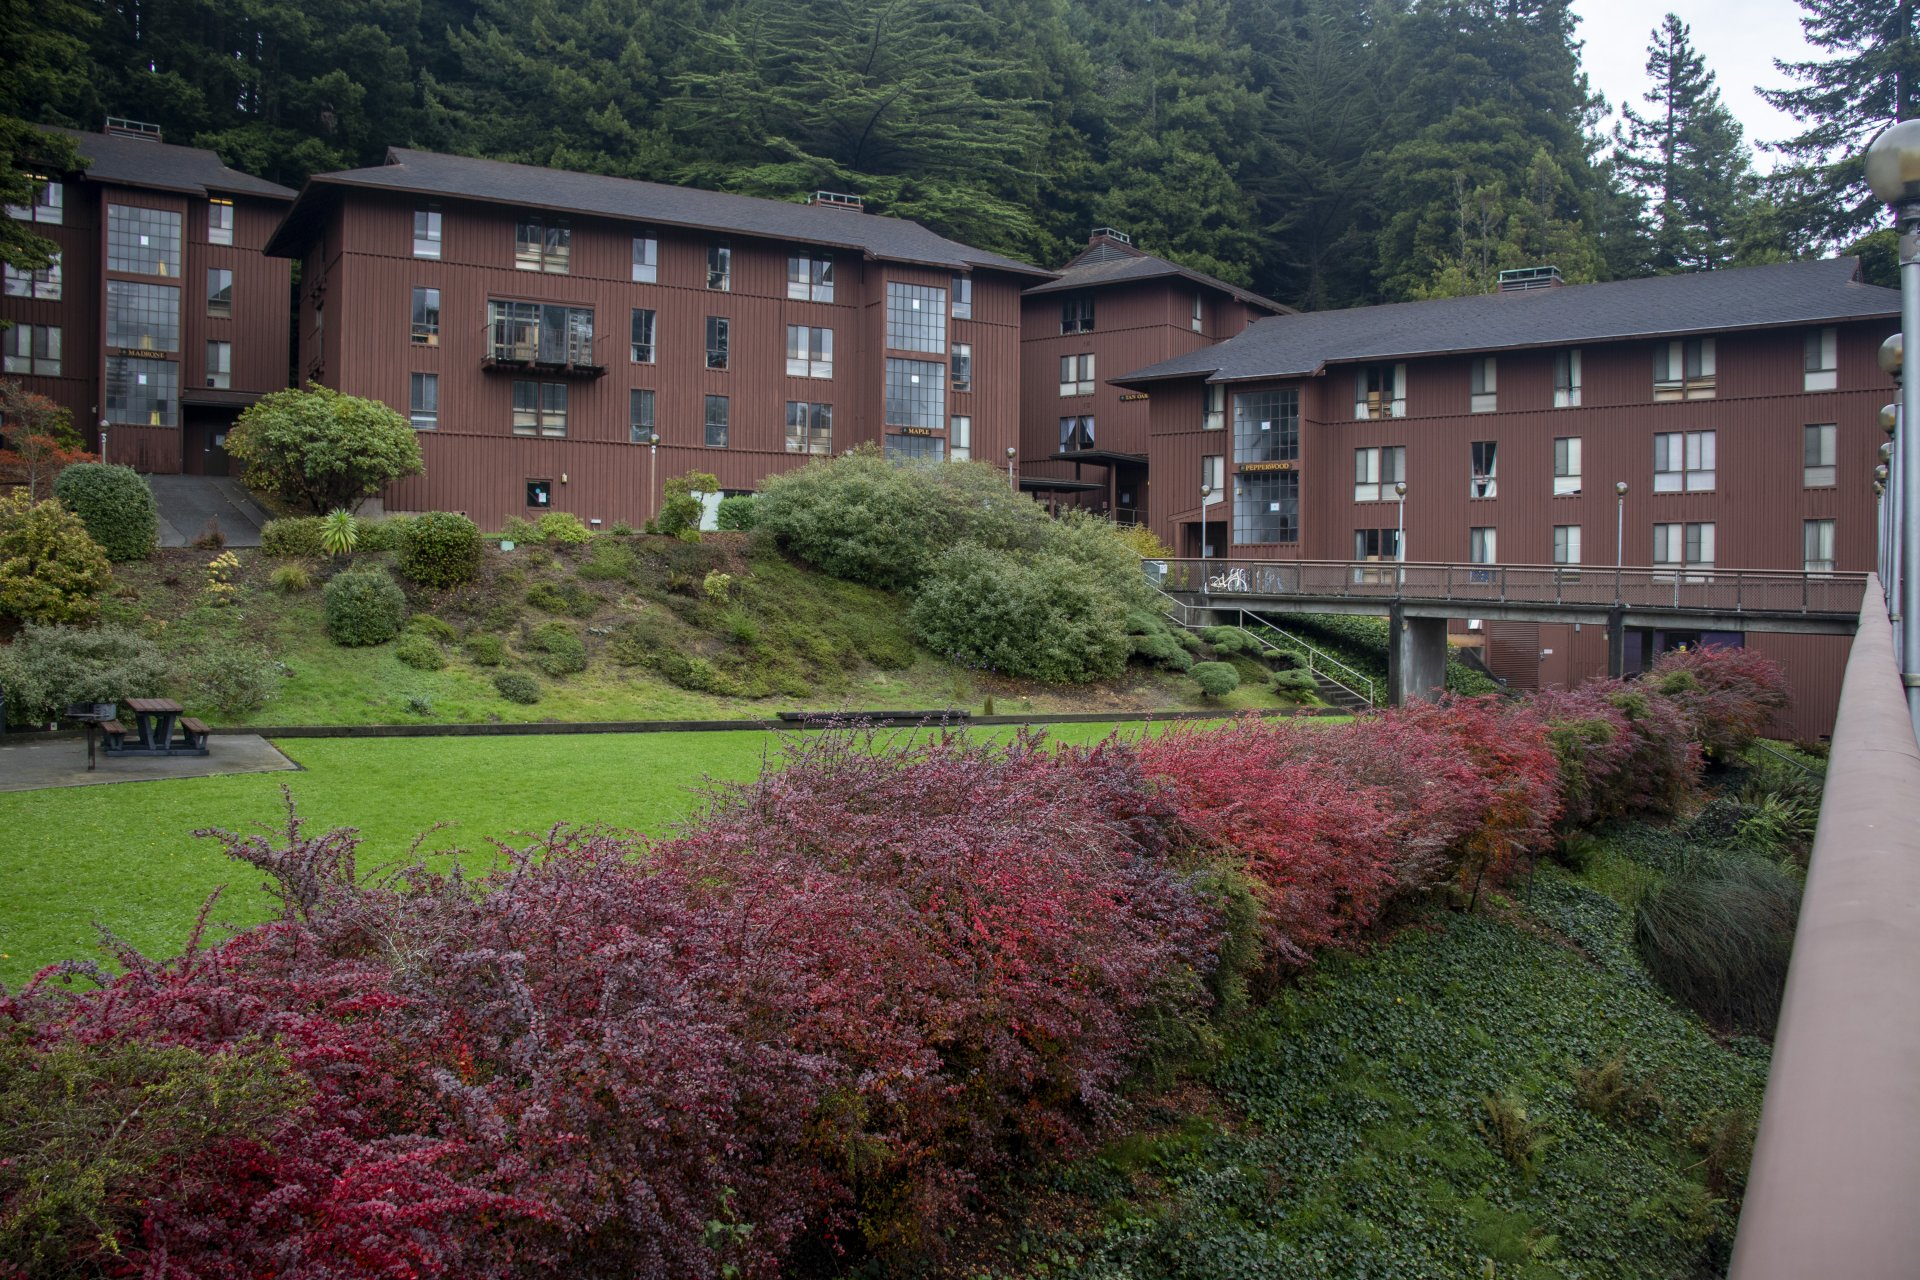 The Madrone, Maple, Tan Oak and Pepperwood dorms on Nov. 17 | Photo by Dakota Cox